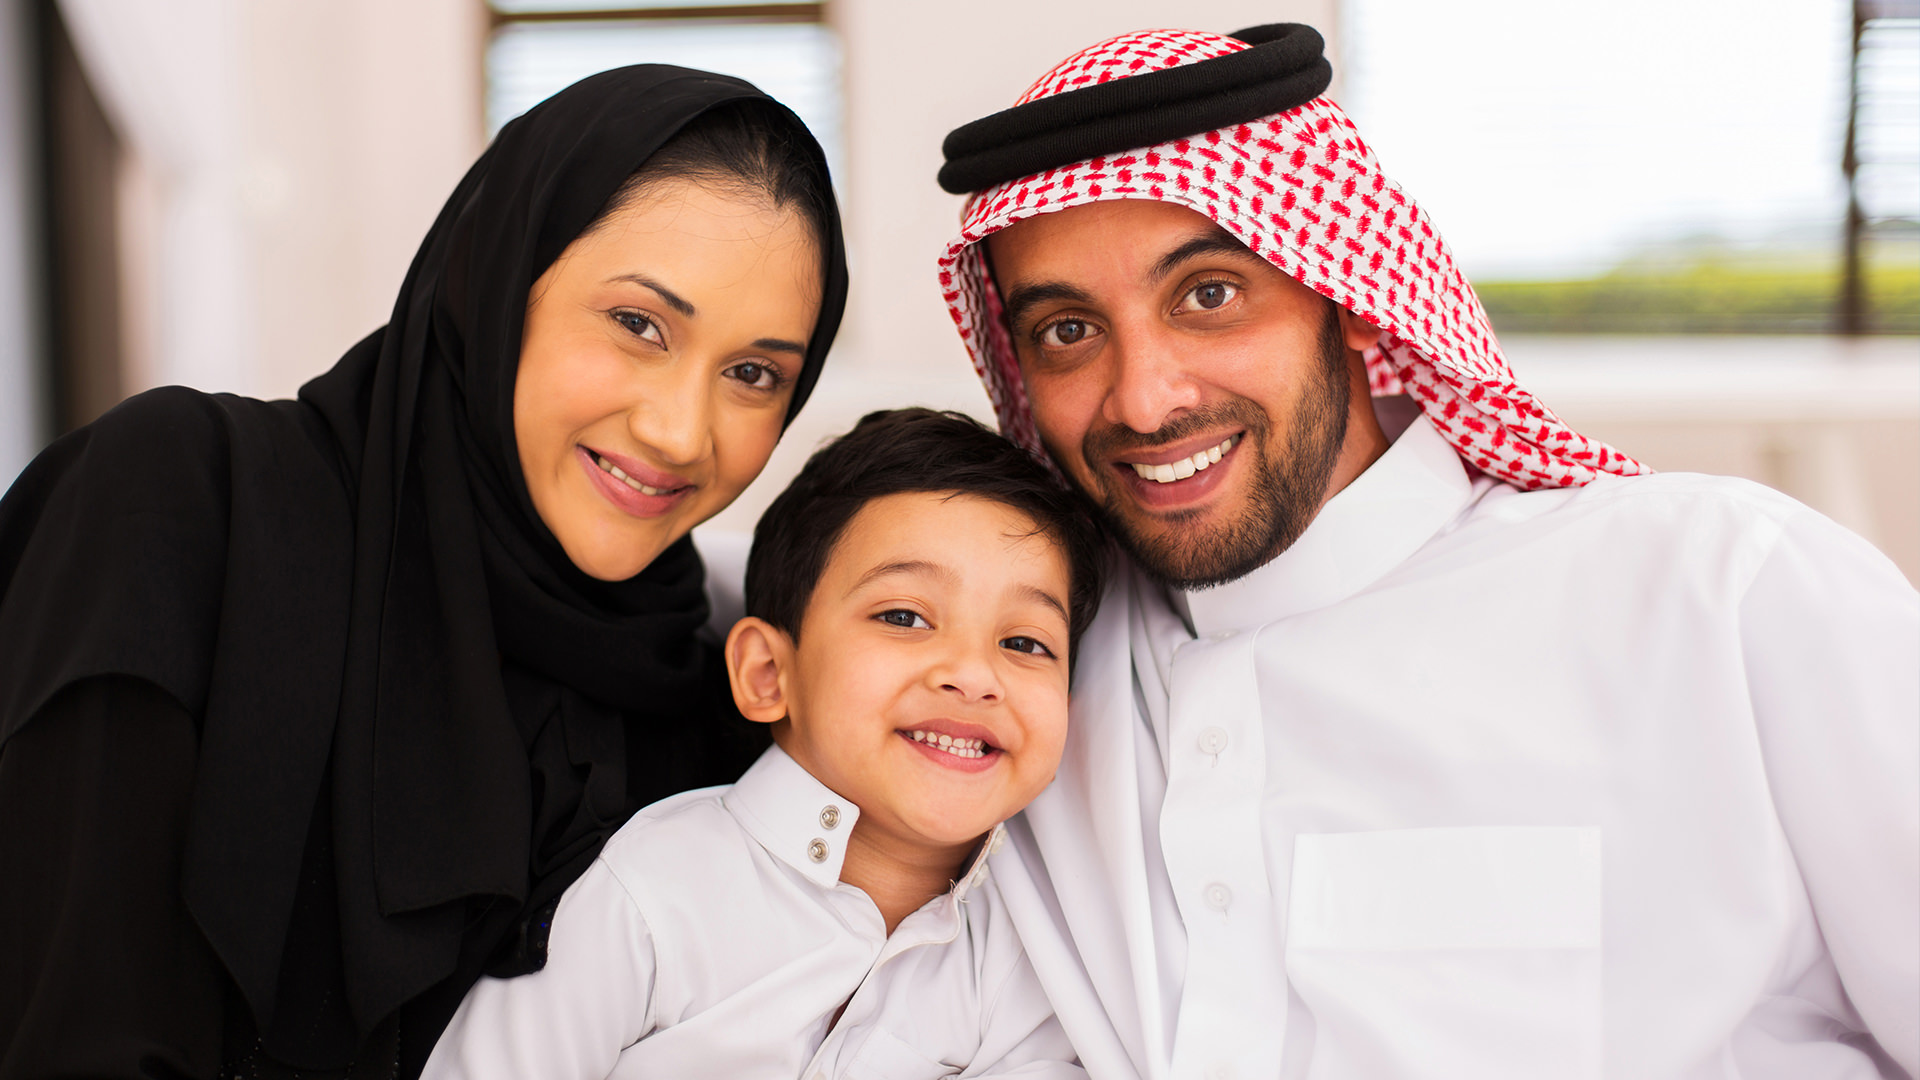 muslim singles in green Looking for durban muslim women browse the profiles below and you may just see your perfect match start a conversation and setup a meet up tonight we have lots of other members waiting to.